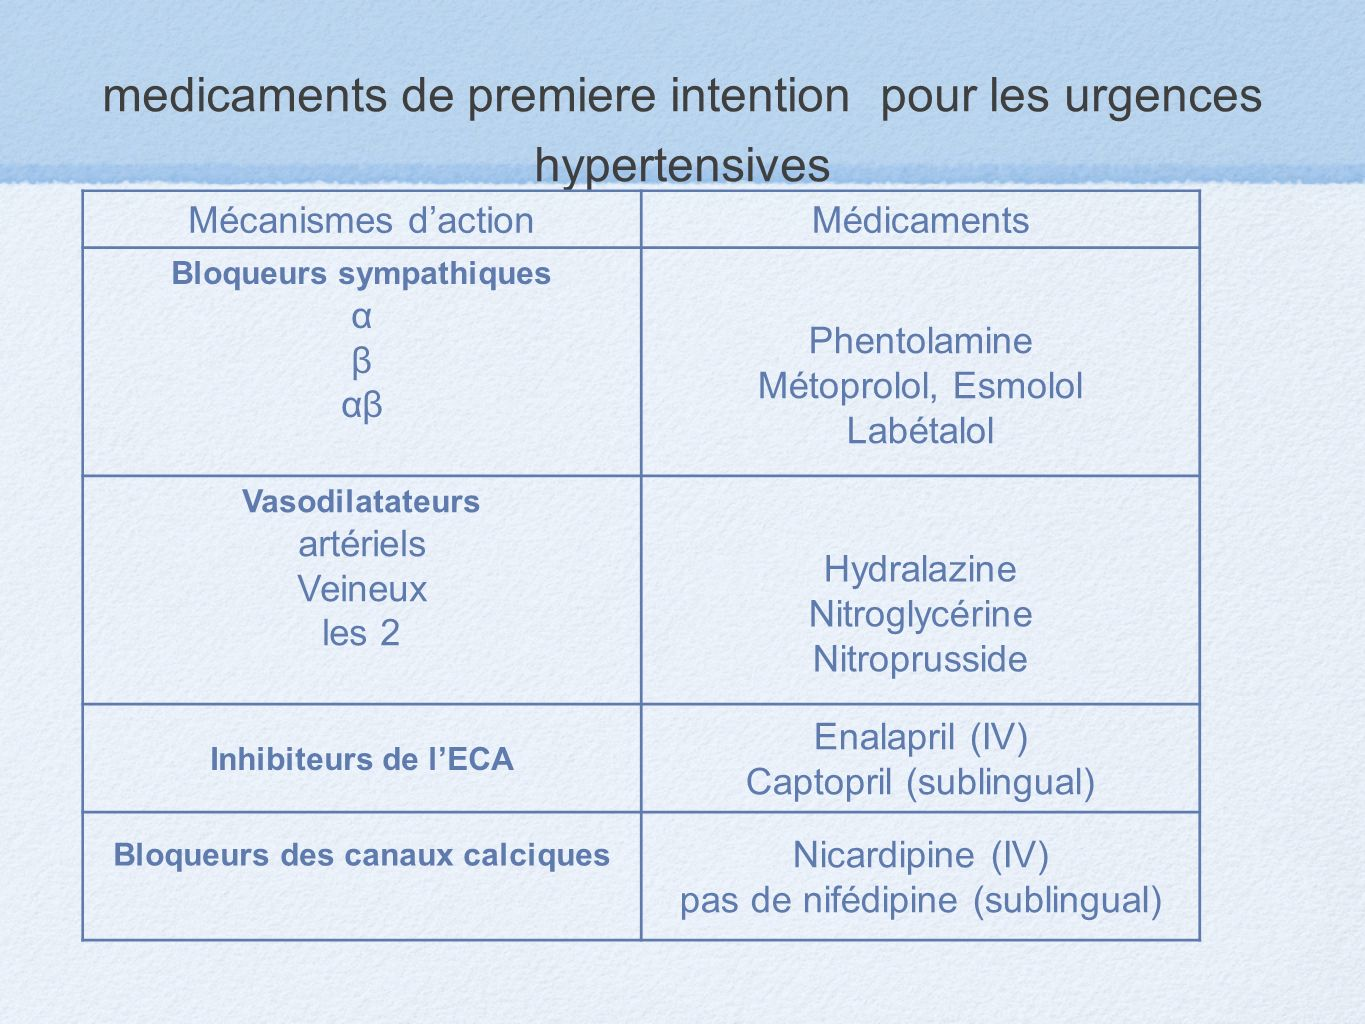 medicaments de premiere intention pour les urgences hypertensives